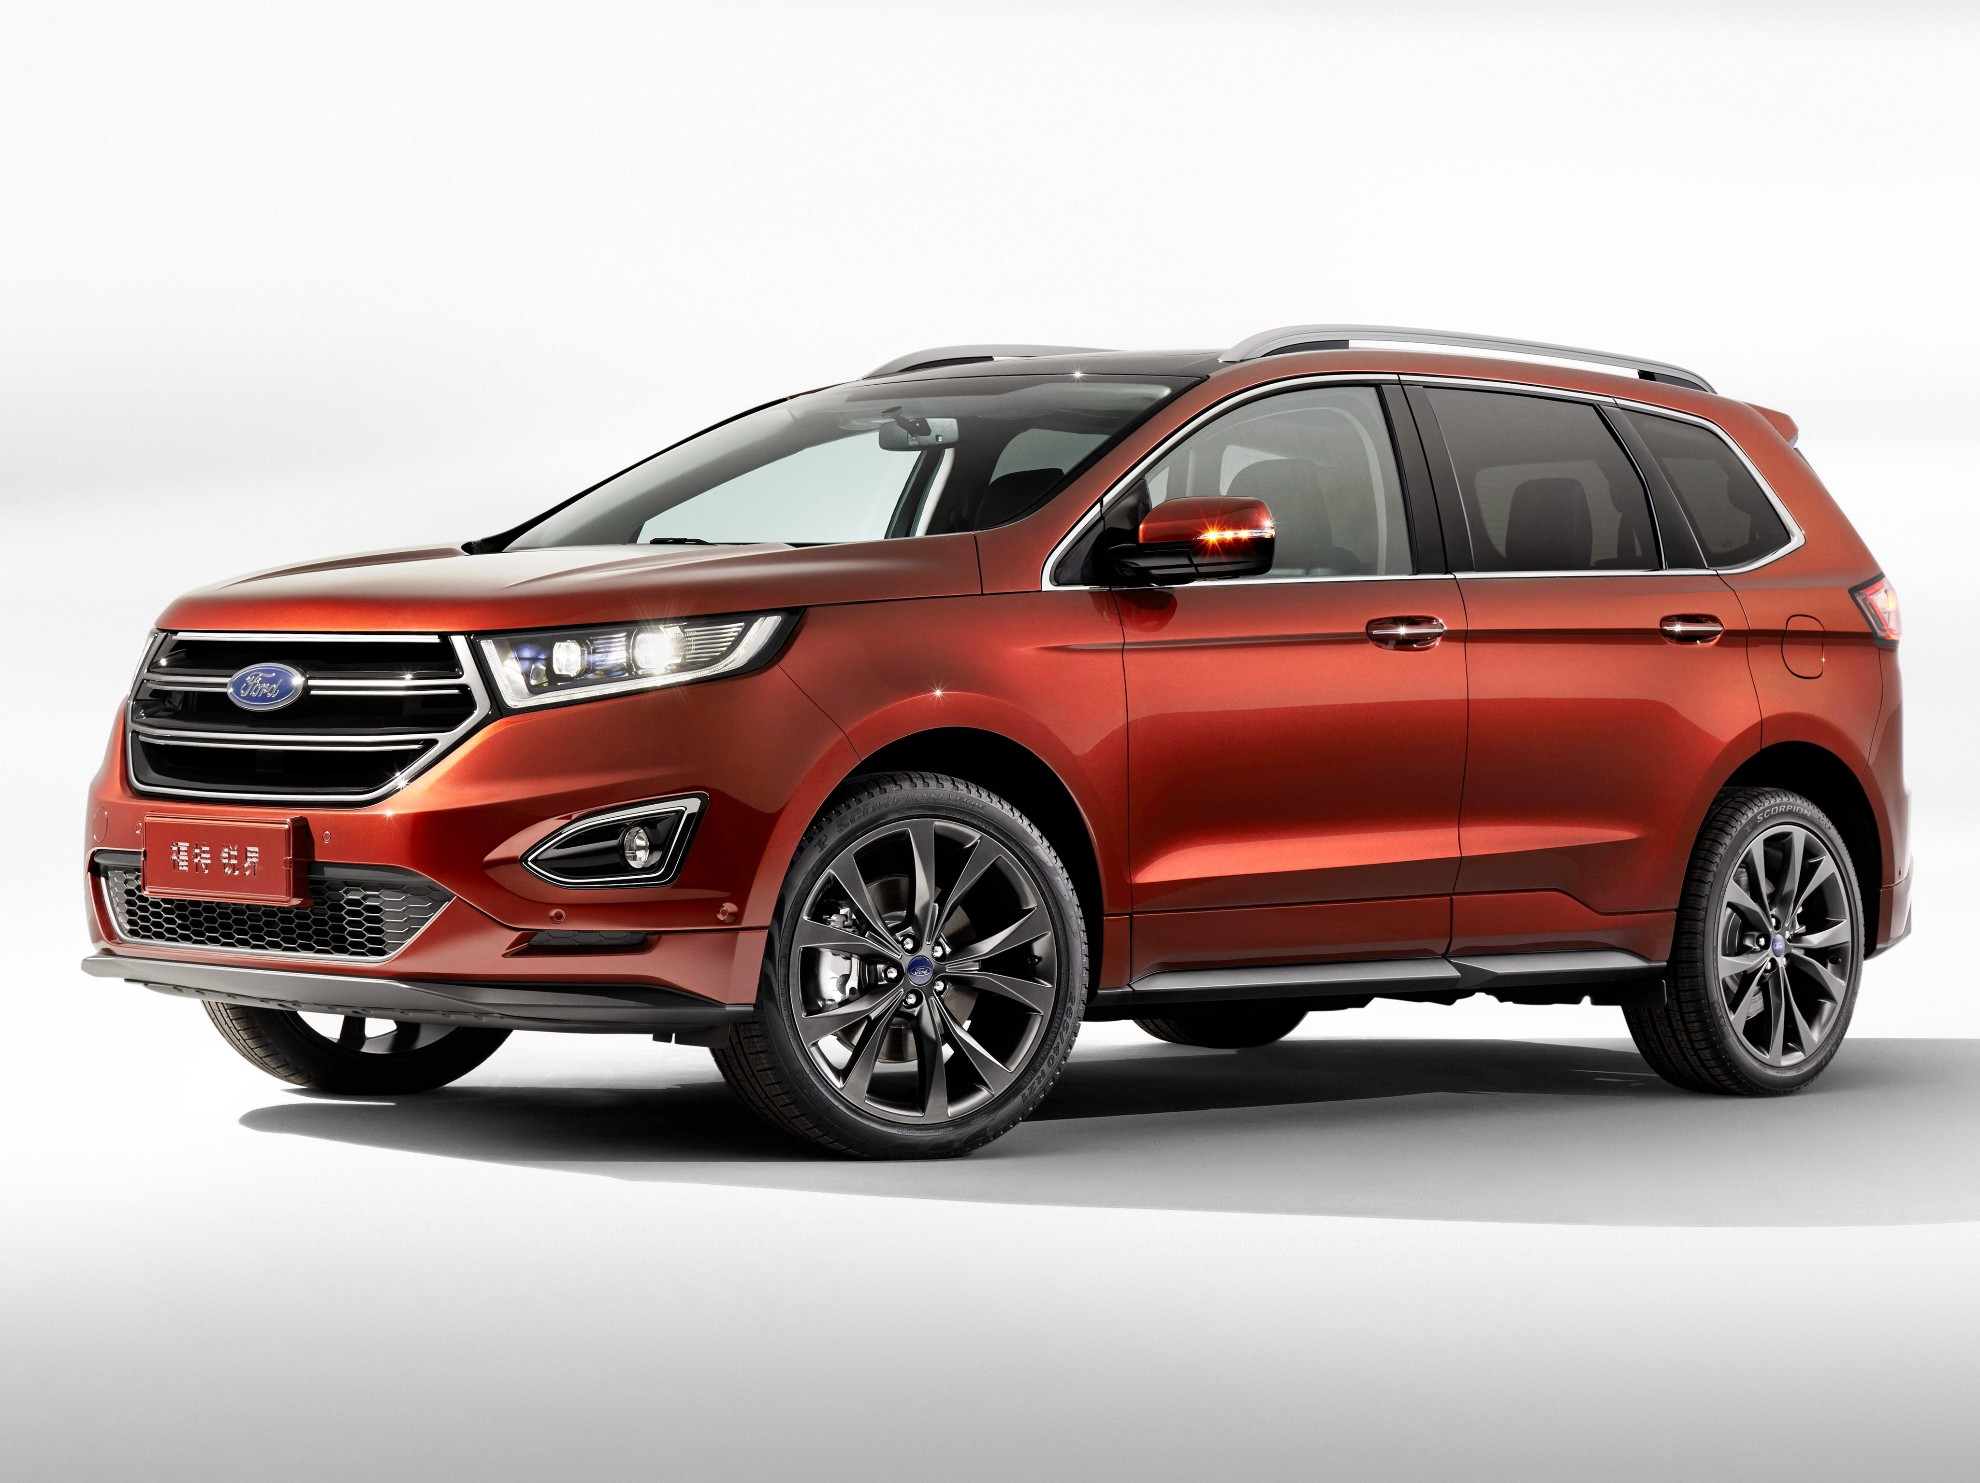 ford edge and fusion are being probed by nhtsa for power steering and doors autoevolution. Black Bedroom Furniture Sets. Home Design Ideas